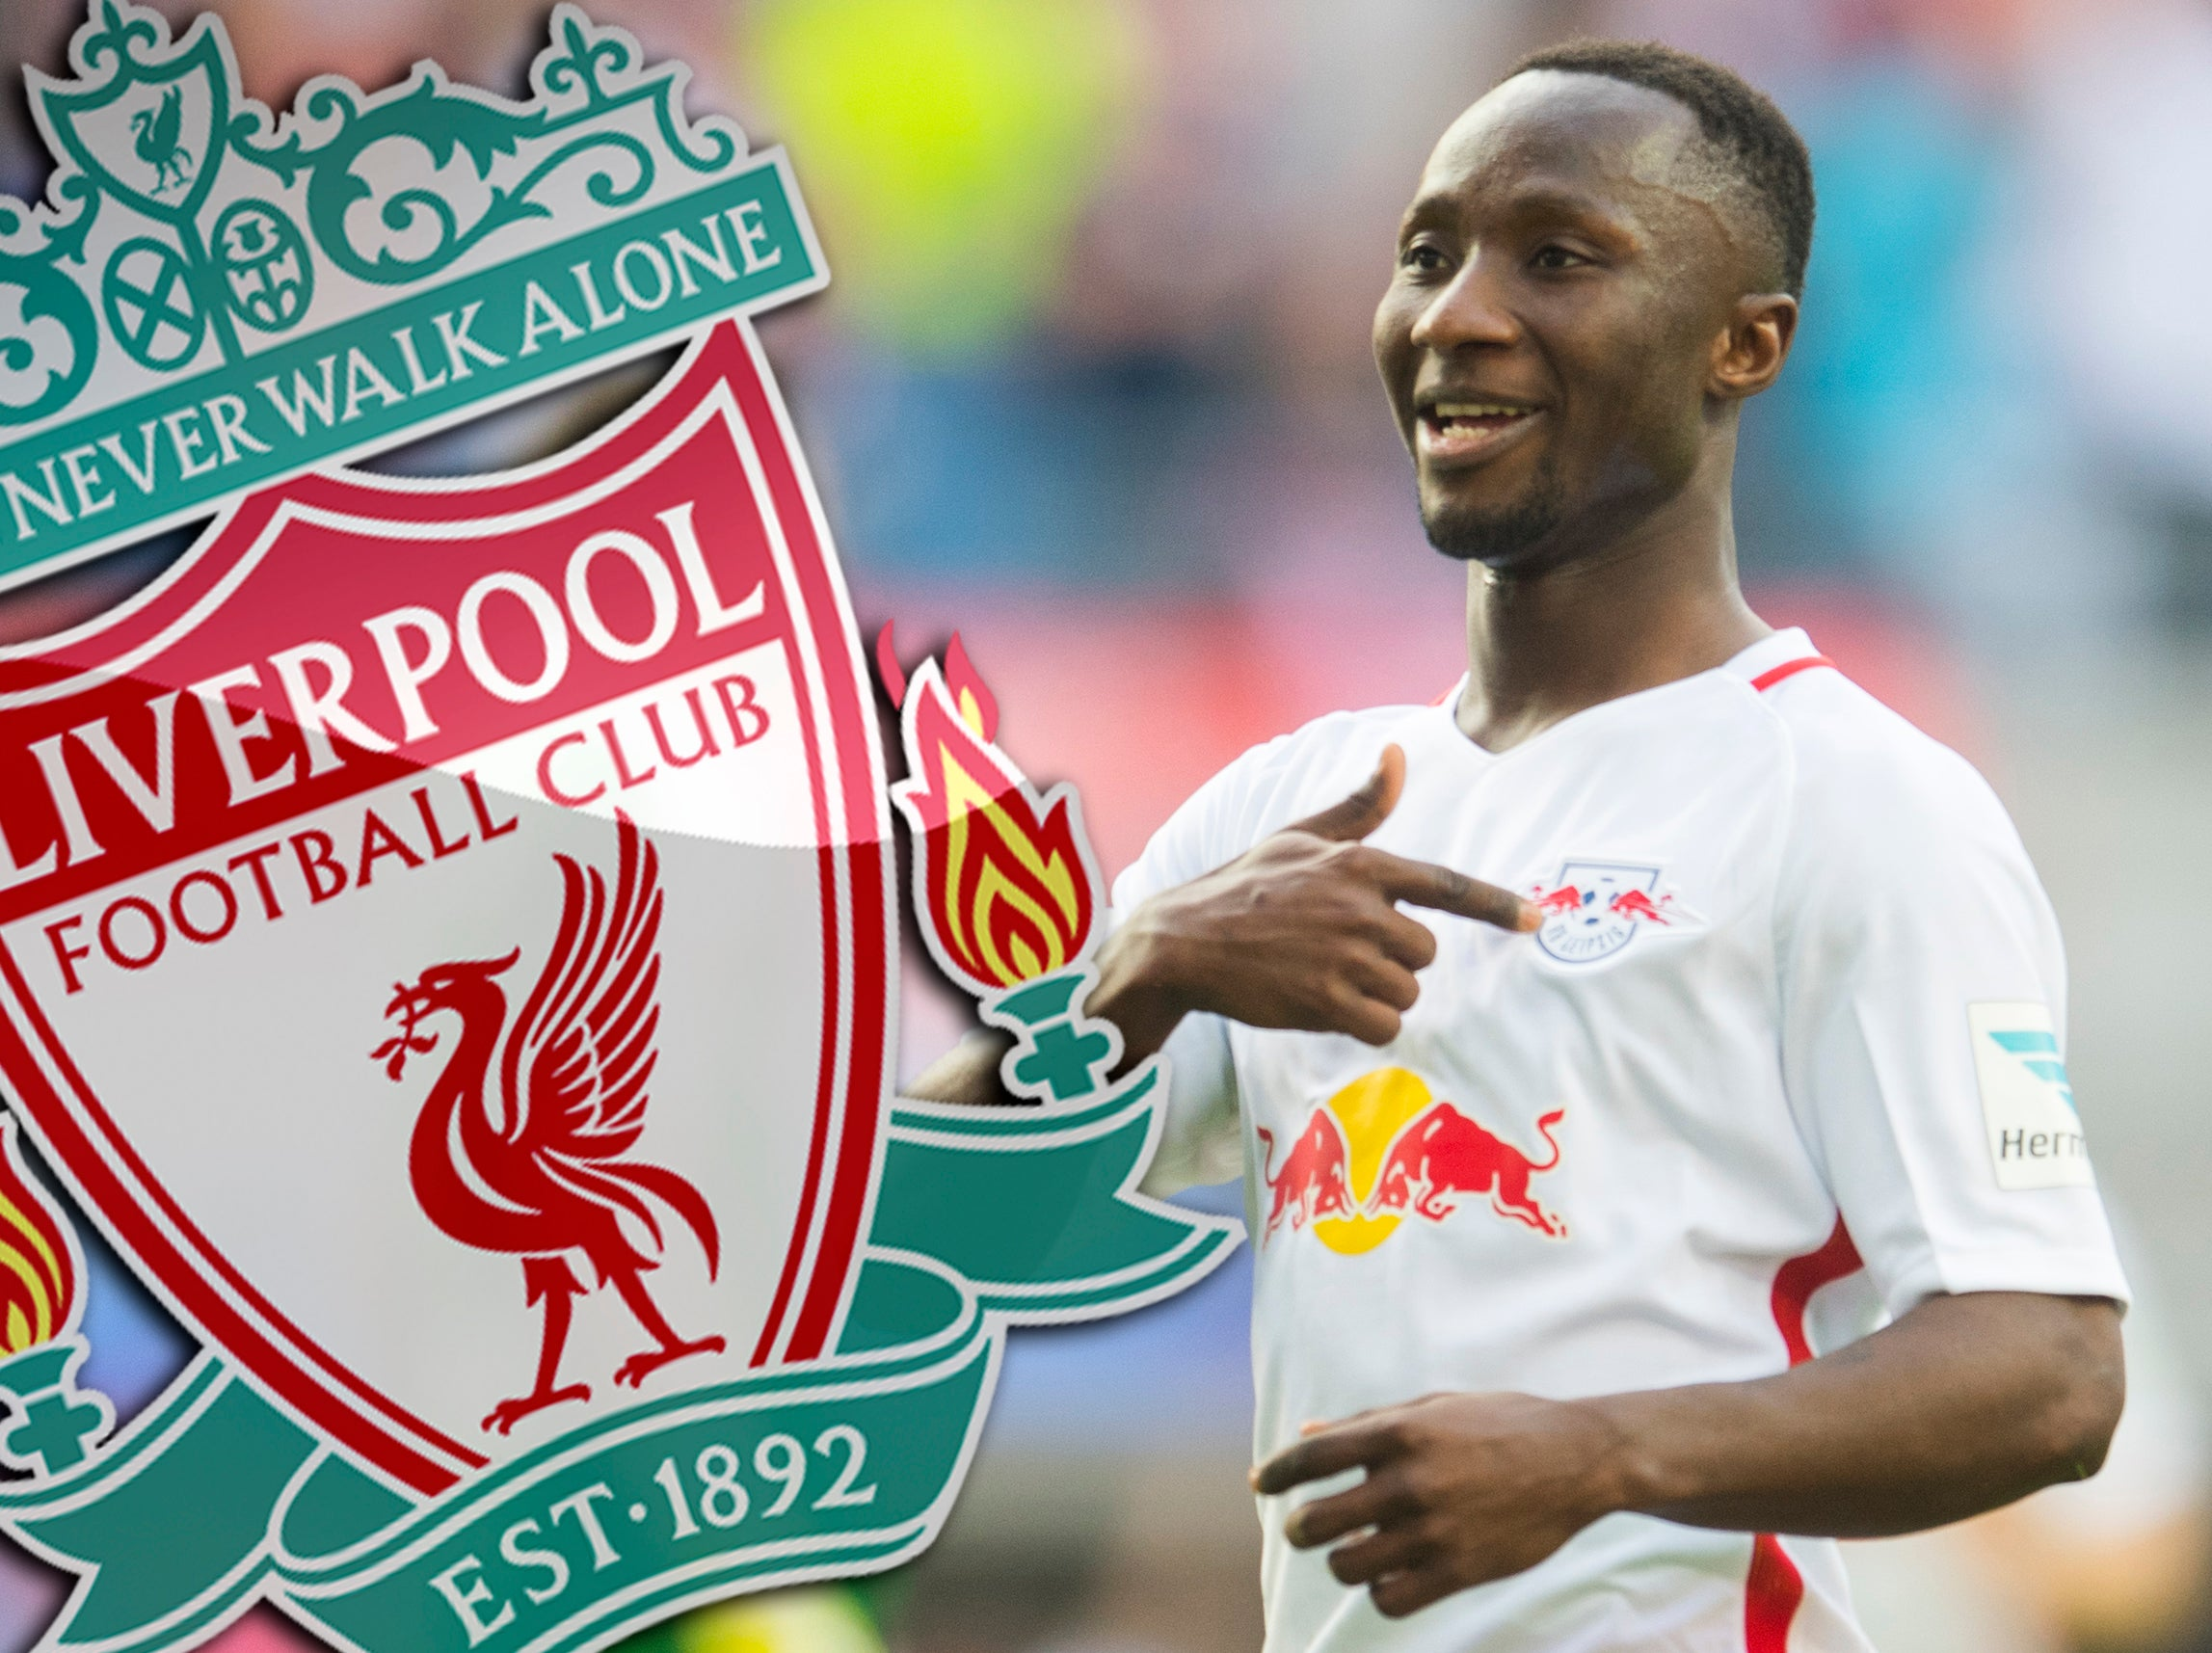 RB Leipzig's CEO reveals how Liverpool beat Barcelona to the signing of top transfer target Naby Keita